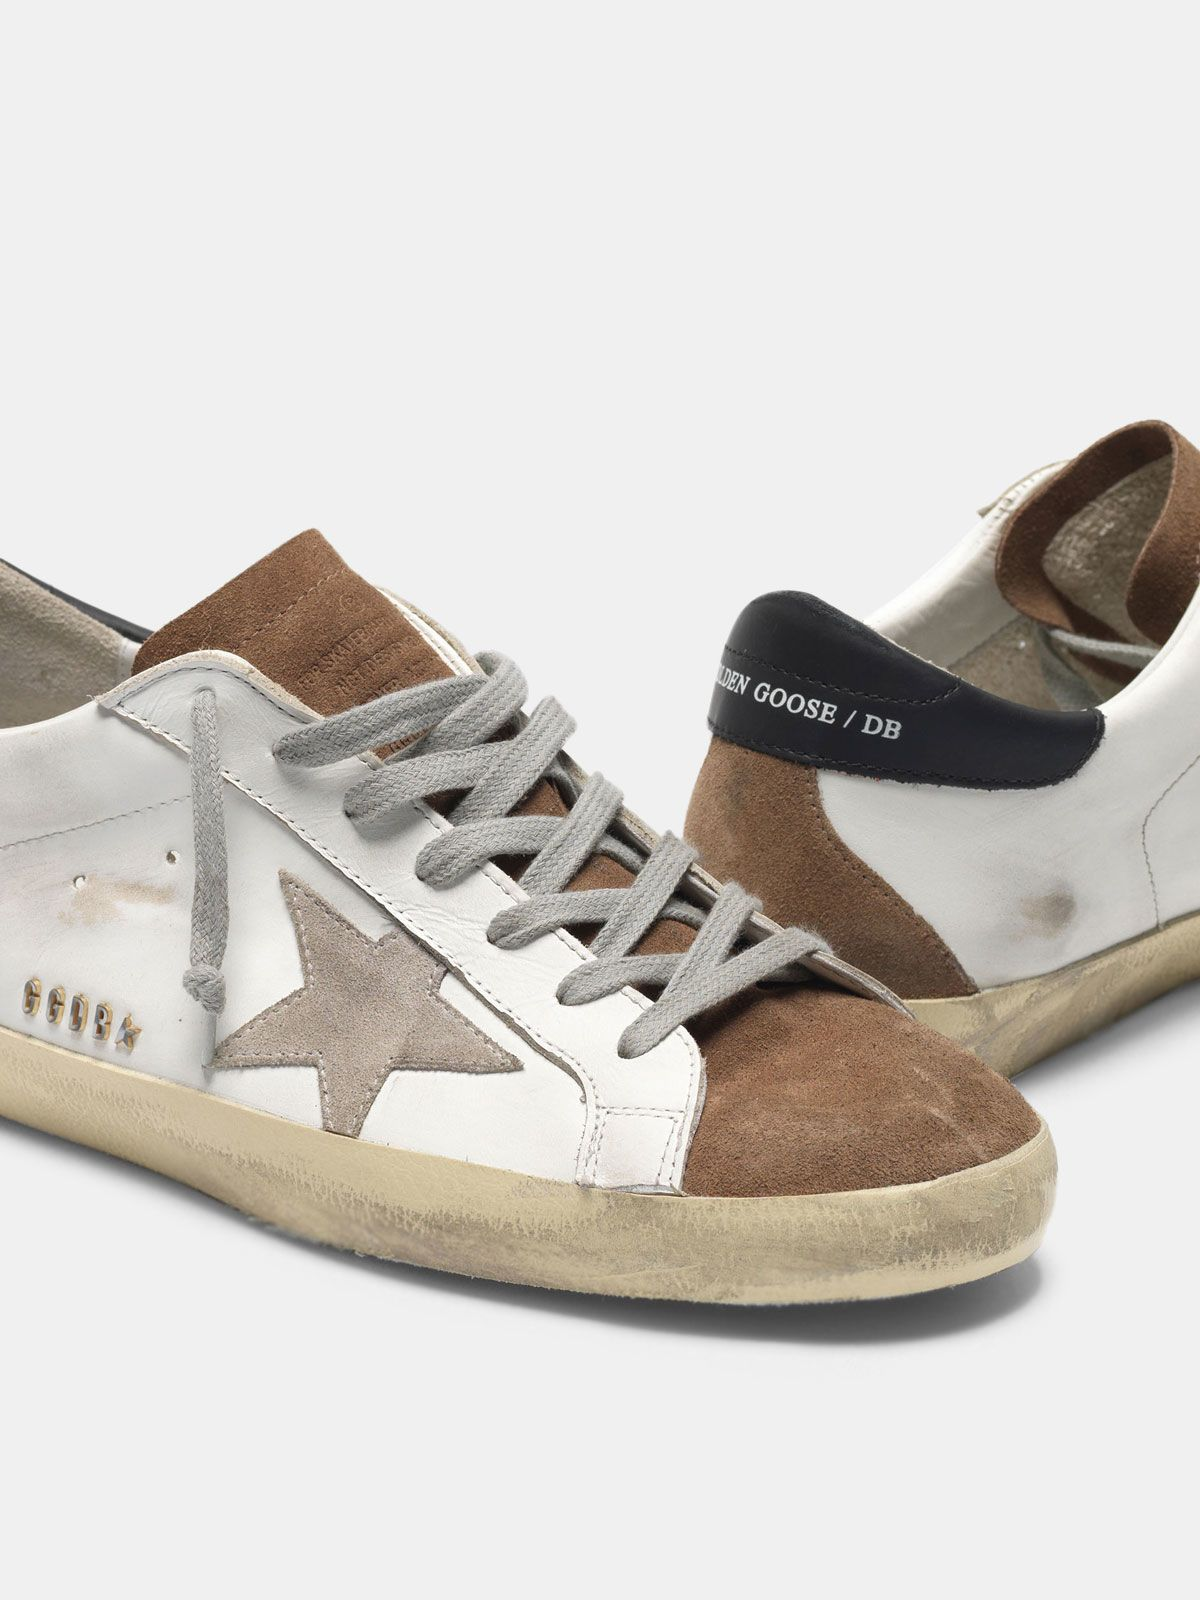 Golden Goose - Super-Star sneakers in leather with suede insert in